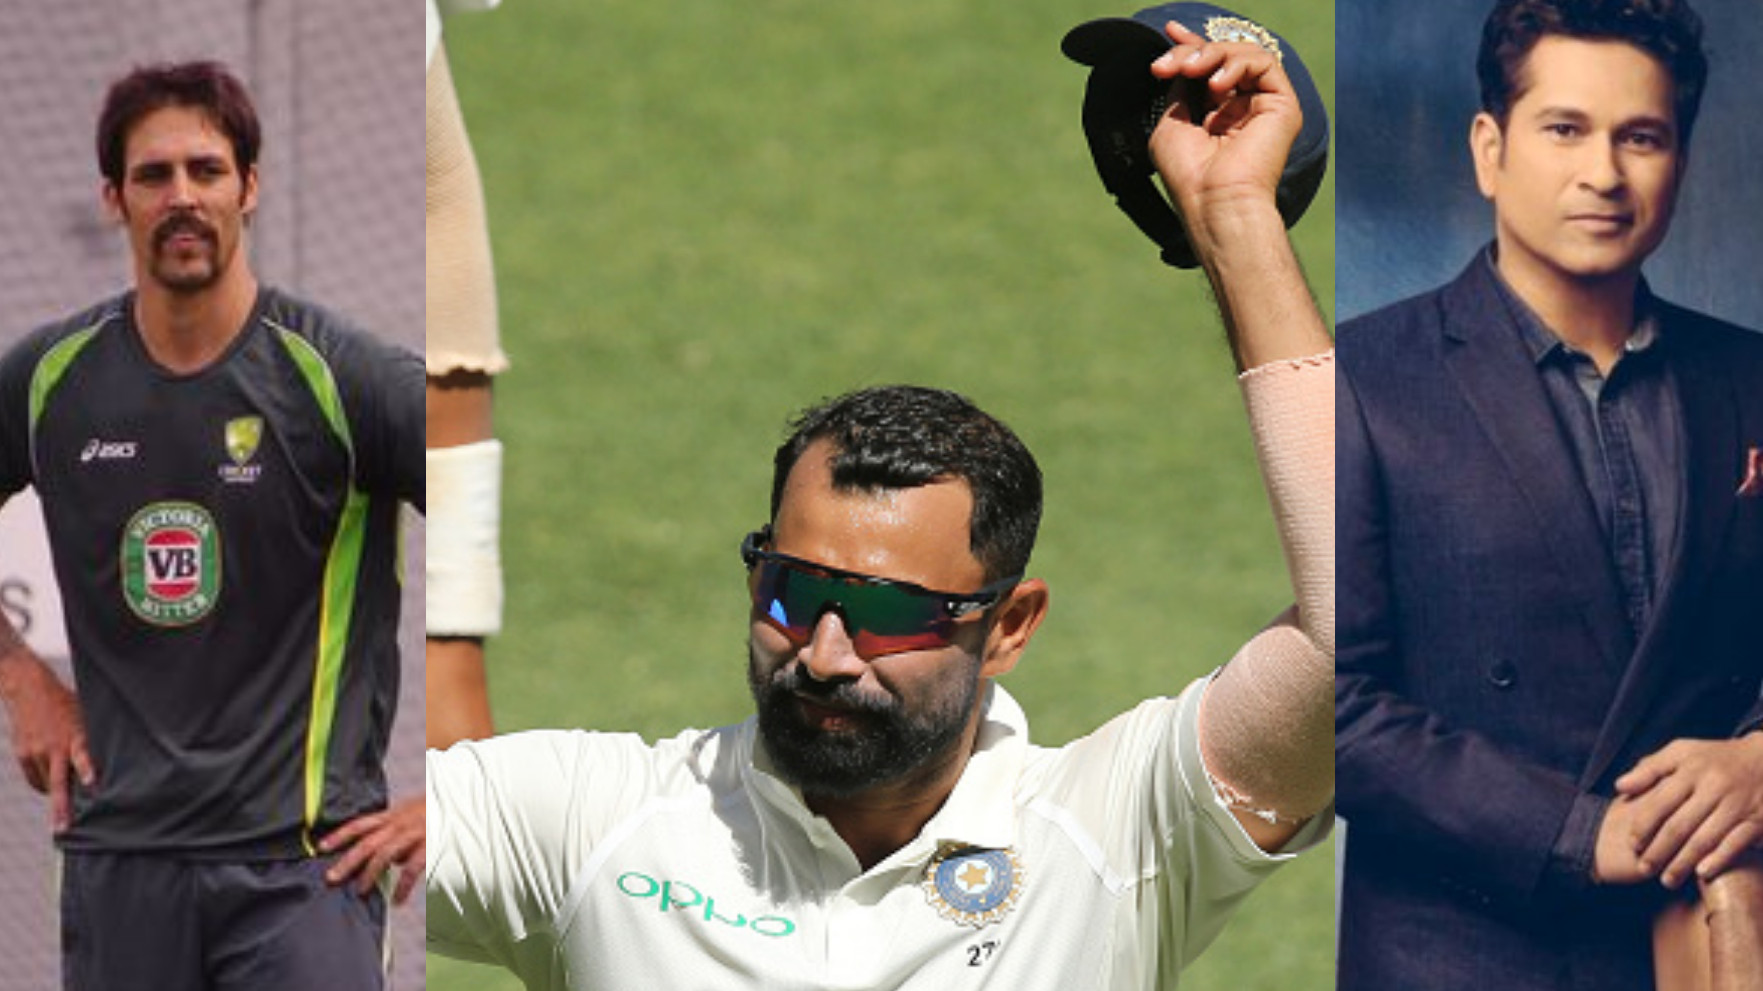 AUS v IND 2018-19: Mohammad Shami gets showered with accolades for his 6/56 in Perth Test